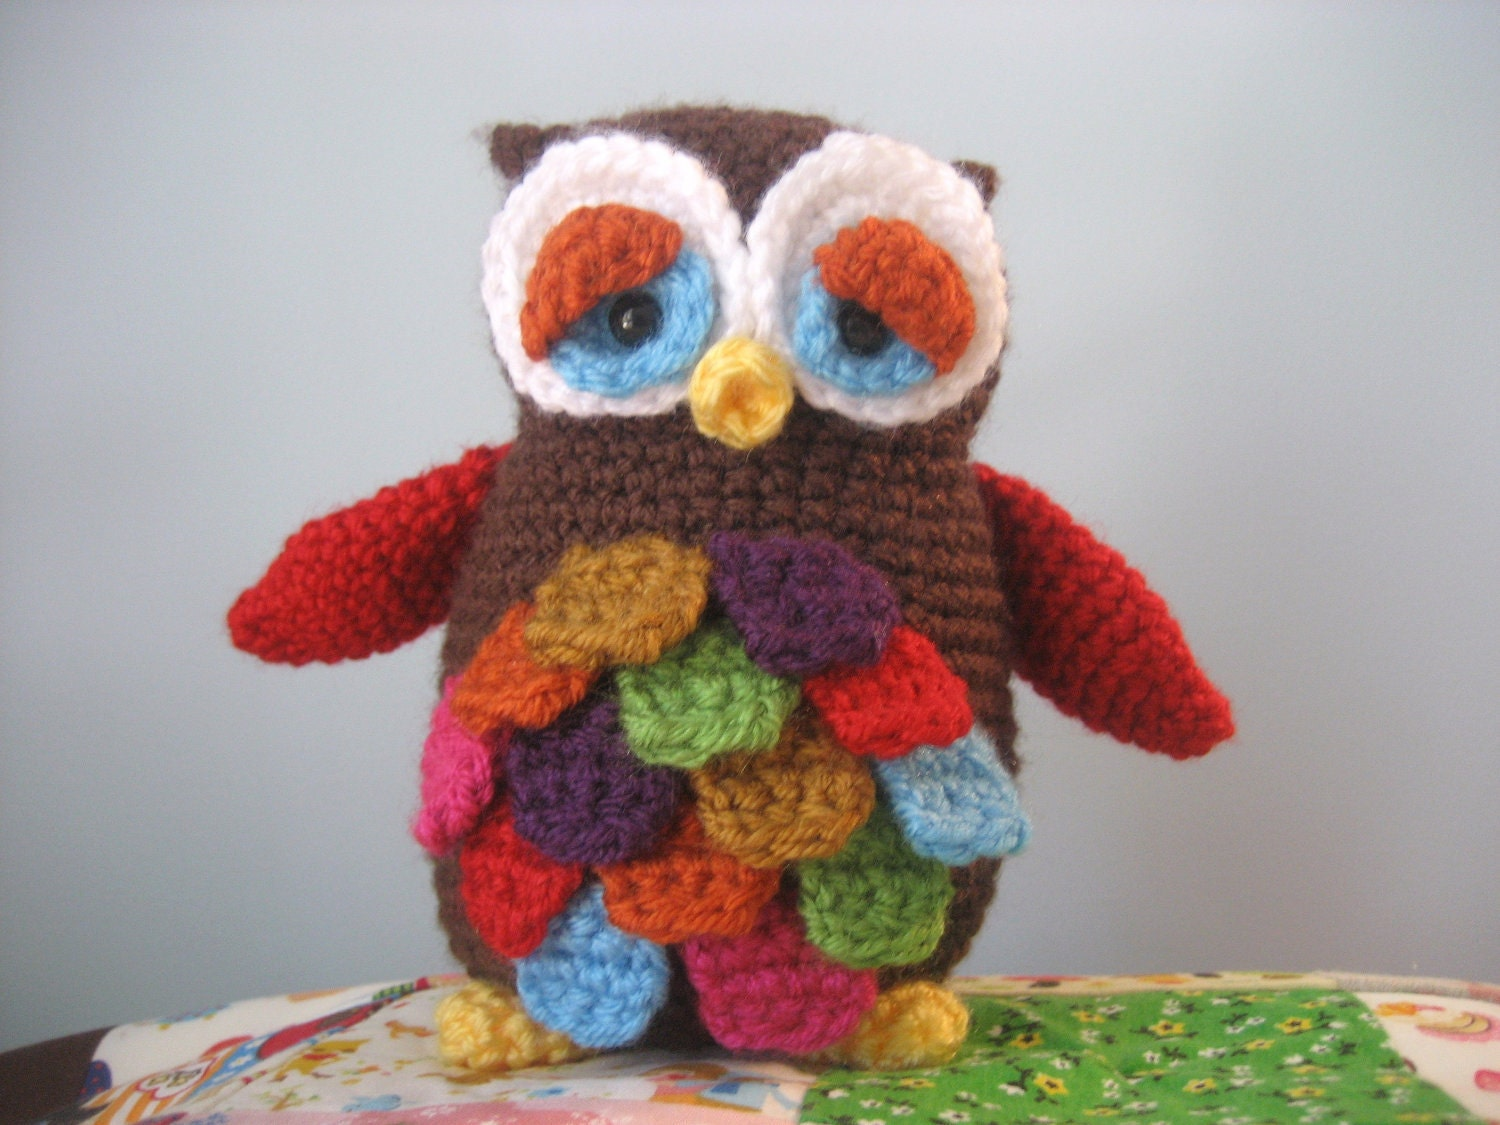 Amigurumi Owl Crochet Patterns Free : Amigurumi Crochet Mr. Hoot Owl Pattern Digital Download